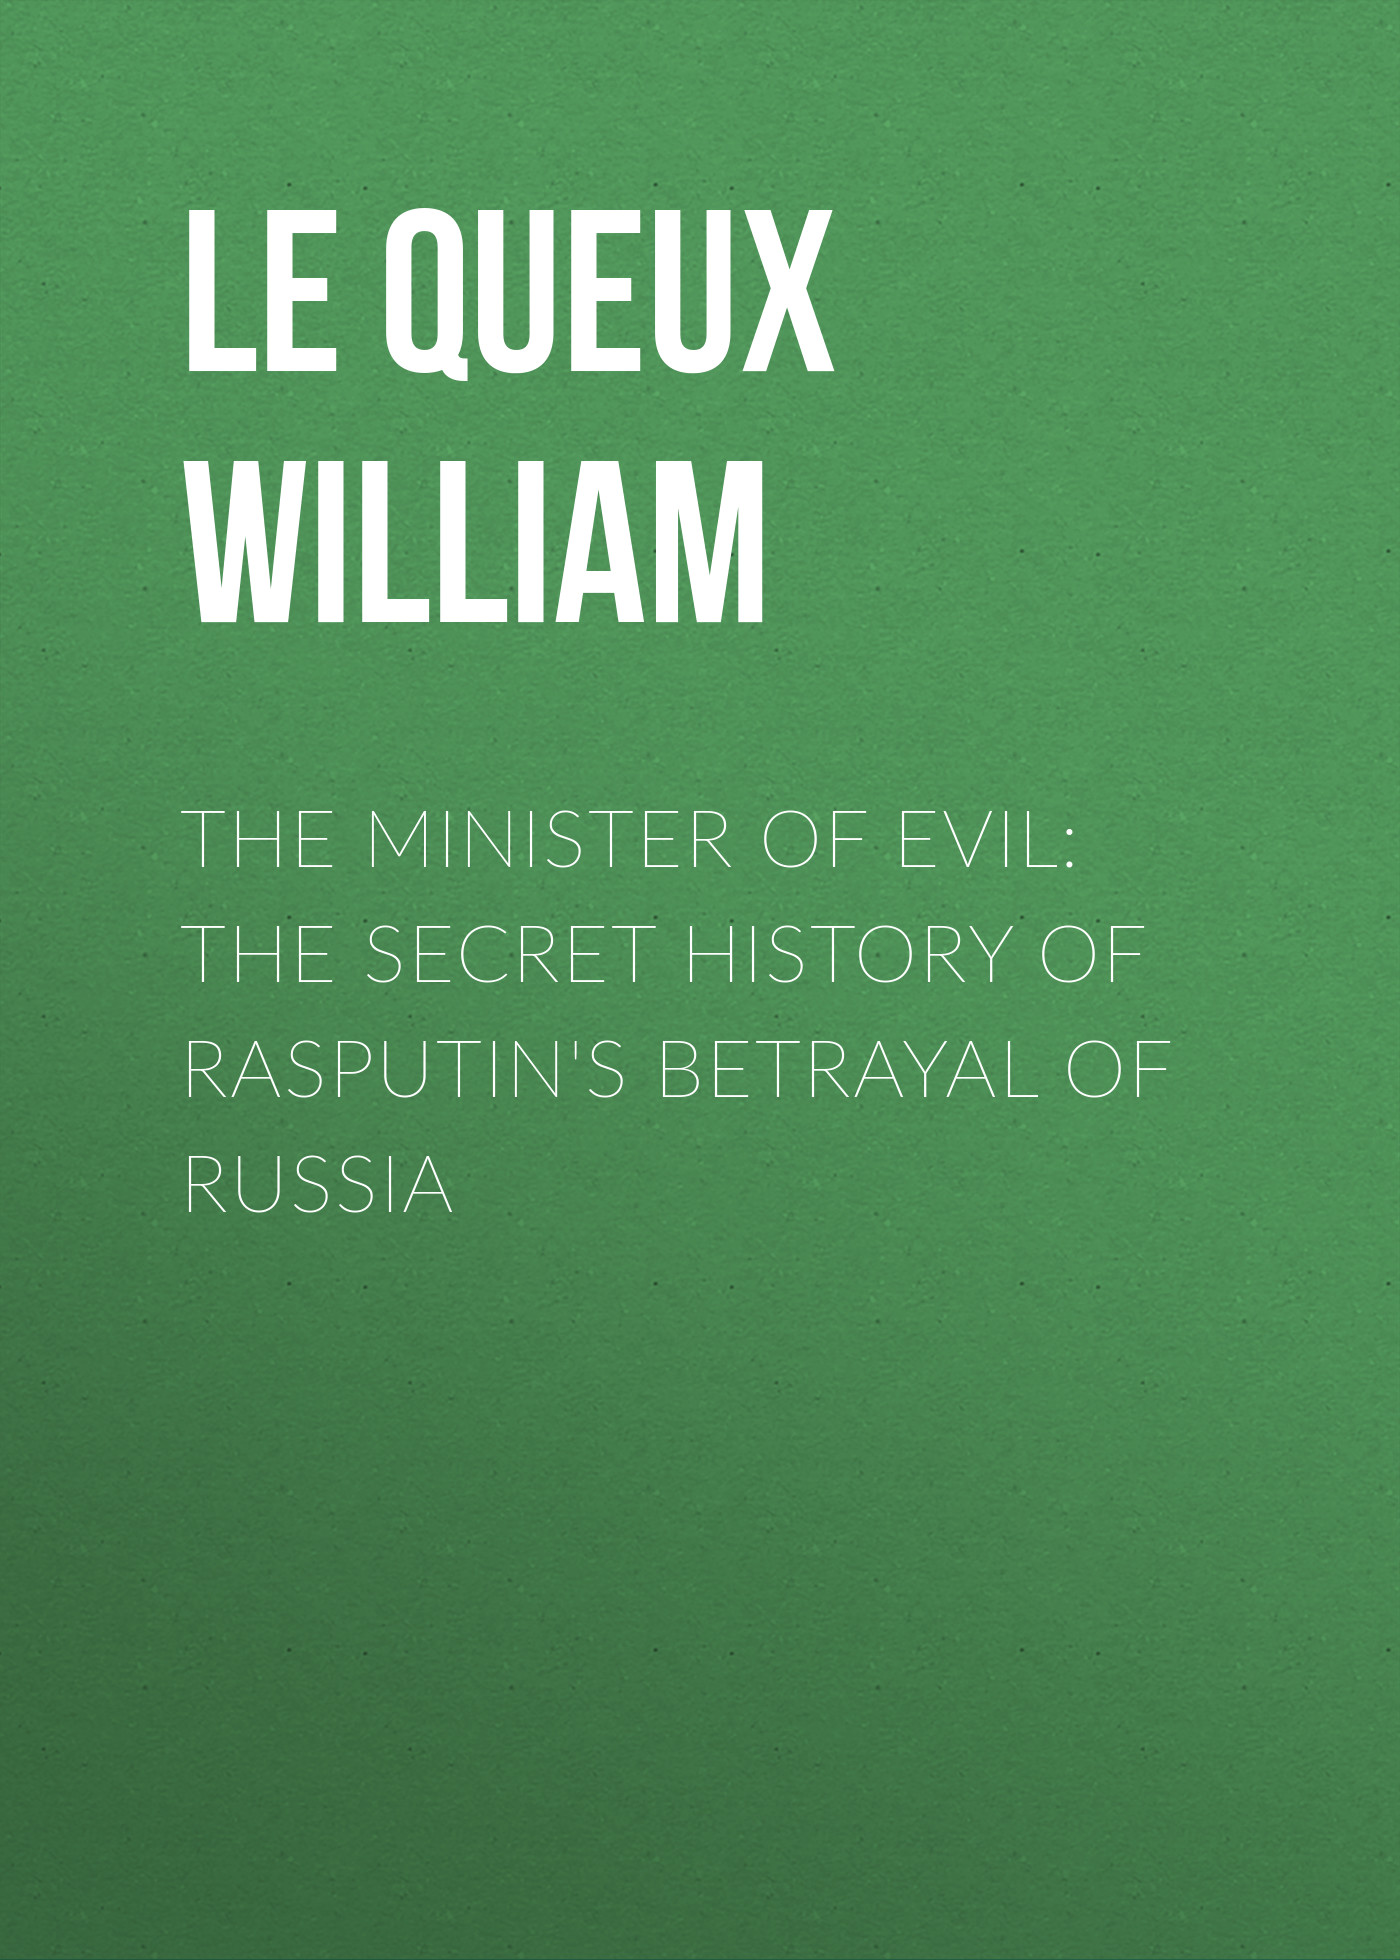 Le Queux William The Minister of Evil: The Secret History of Rasputin's Betrayal of Russia цена и фото